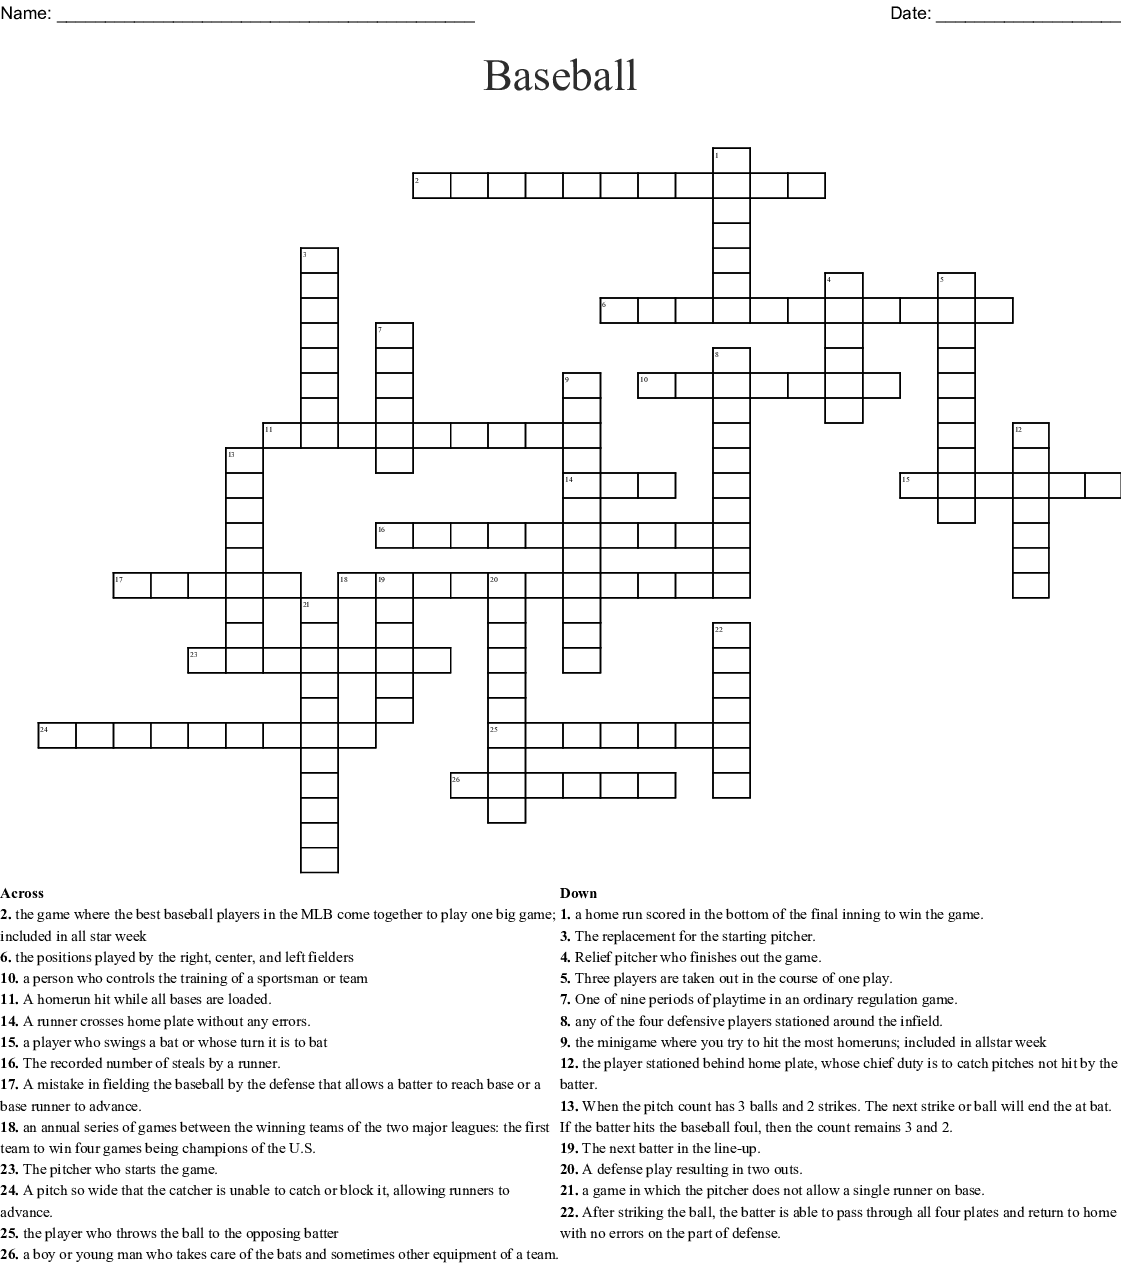 Bowling Terms Crossword